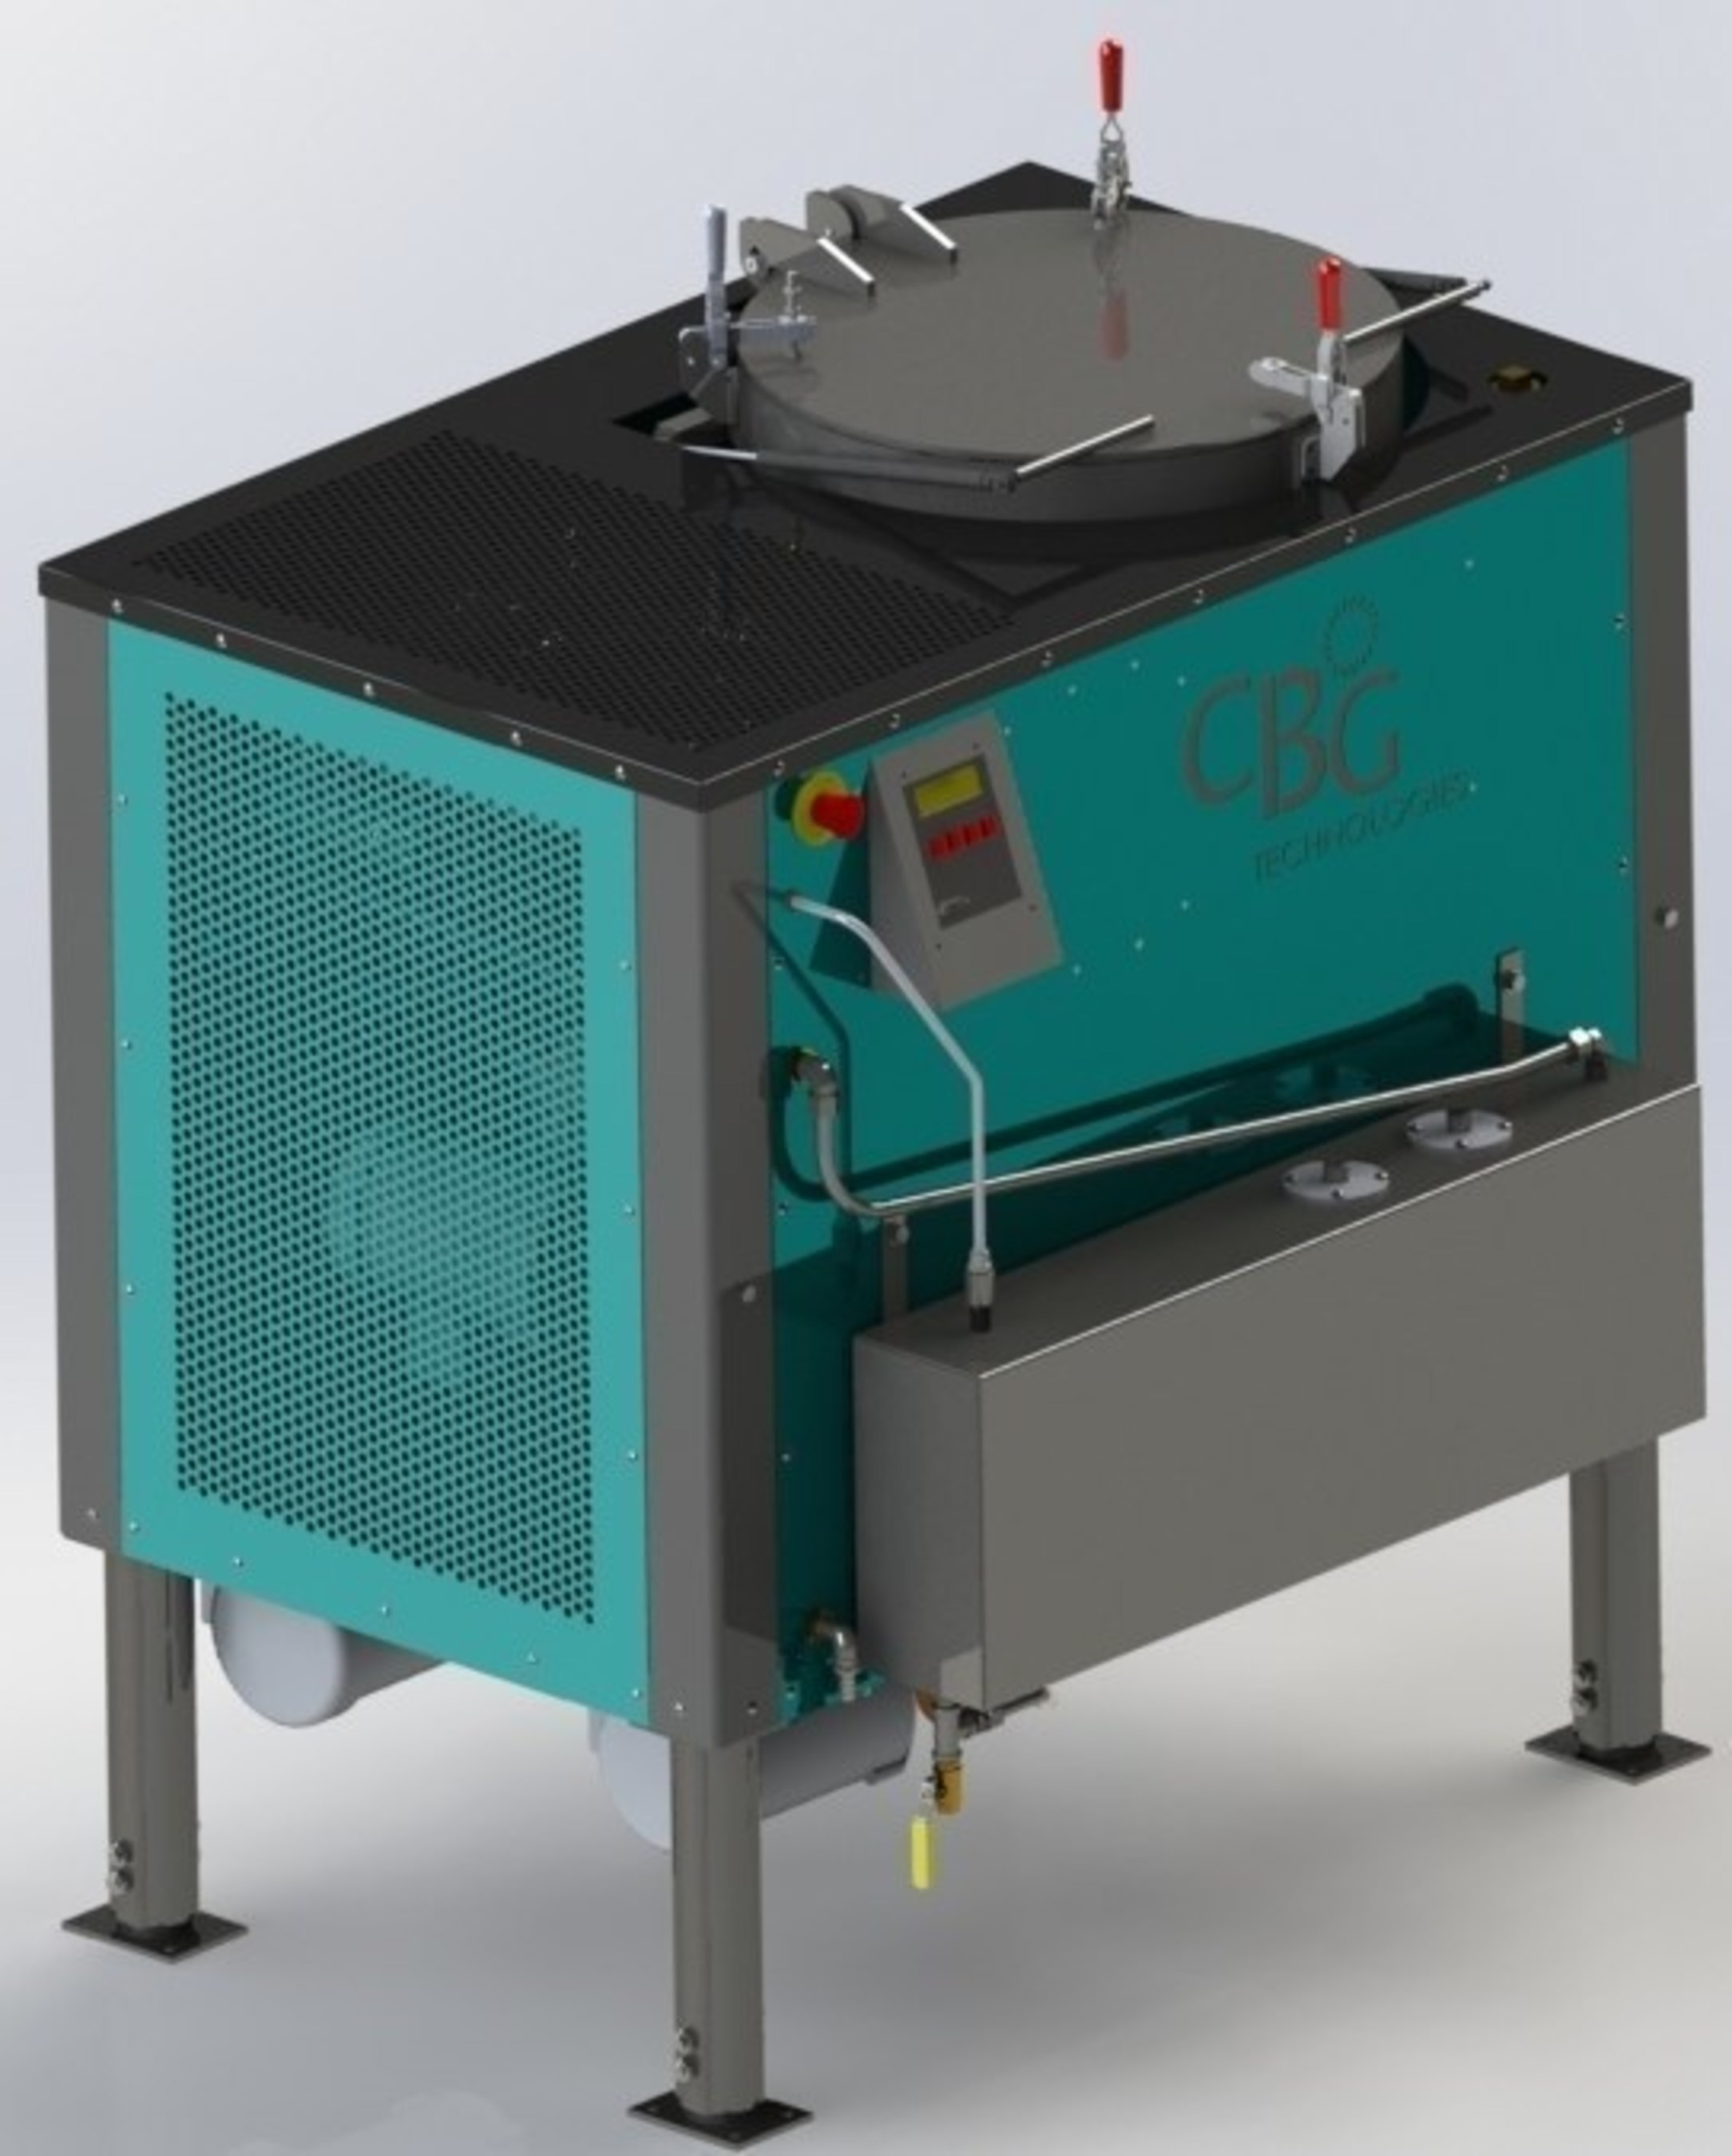 CBG Technologies Introduces PW Series Solvent Recycler for Precision Parts Cleaning Applications